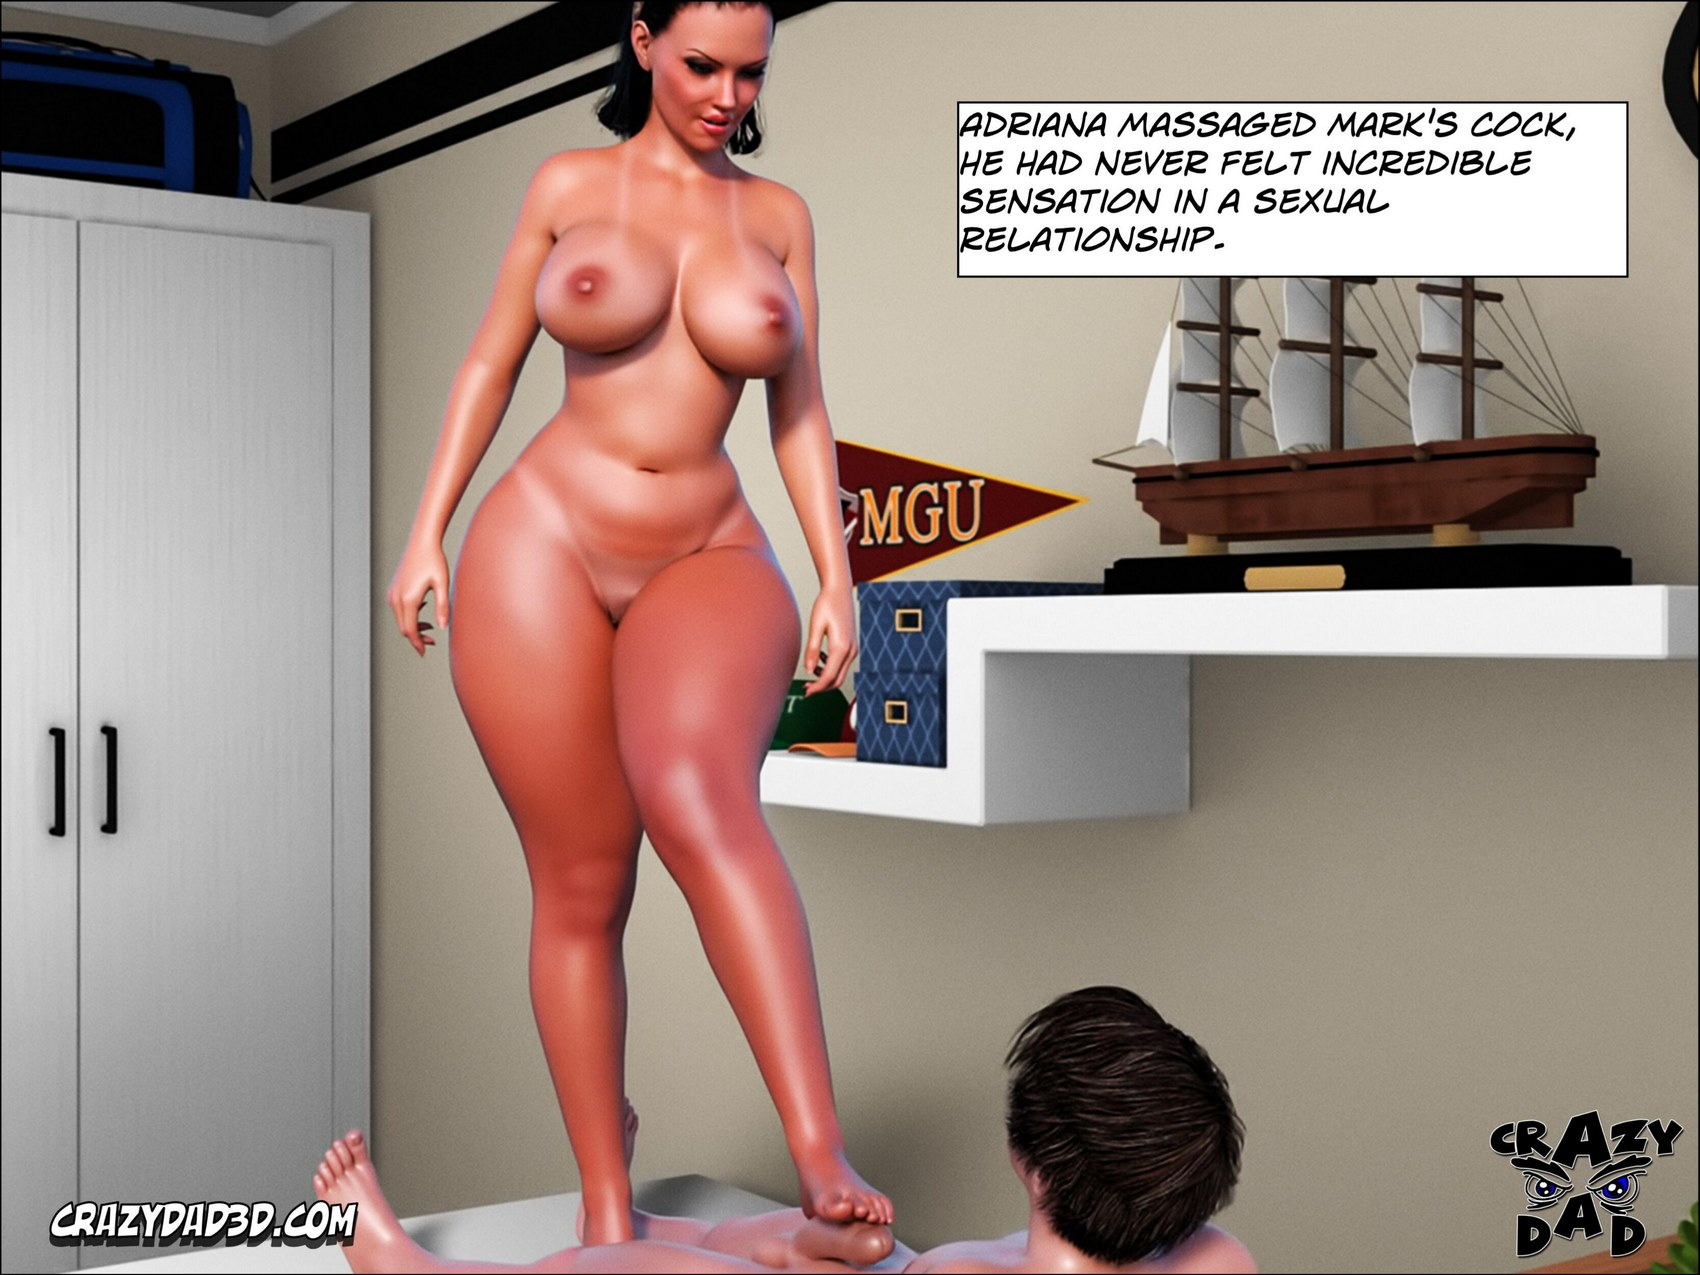 CrazyDad3D- Love Me Tender Part 9